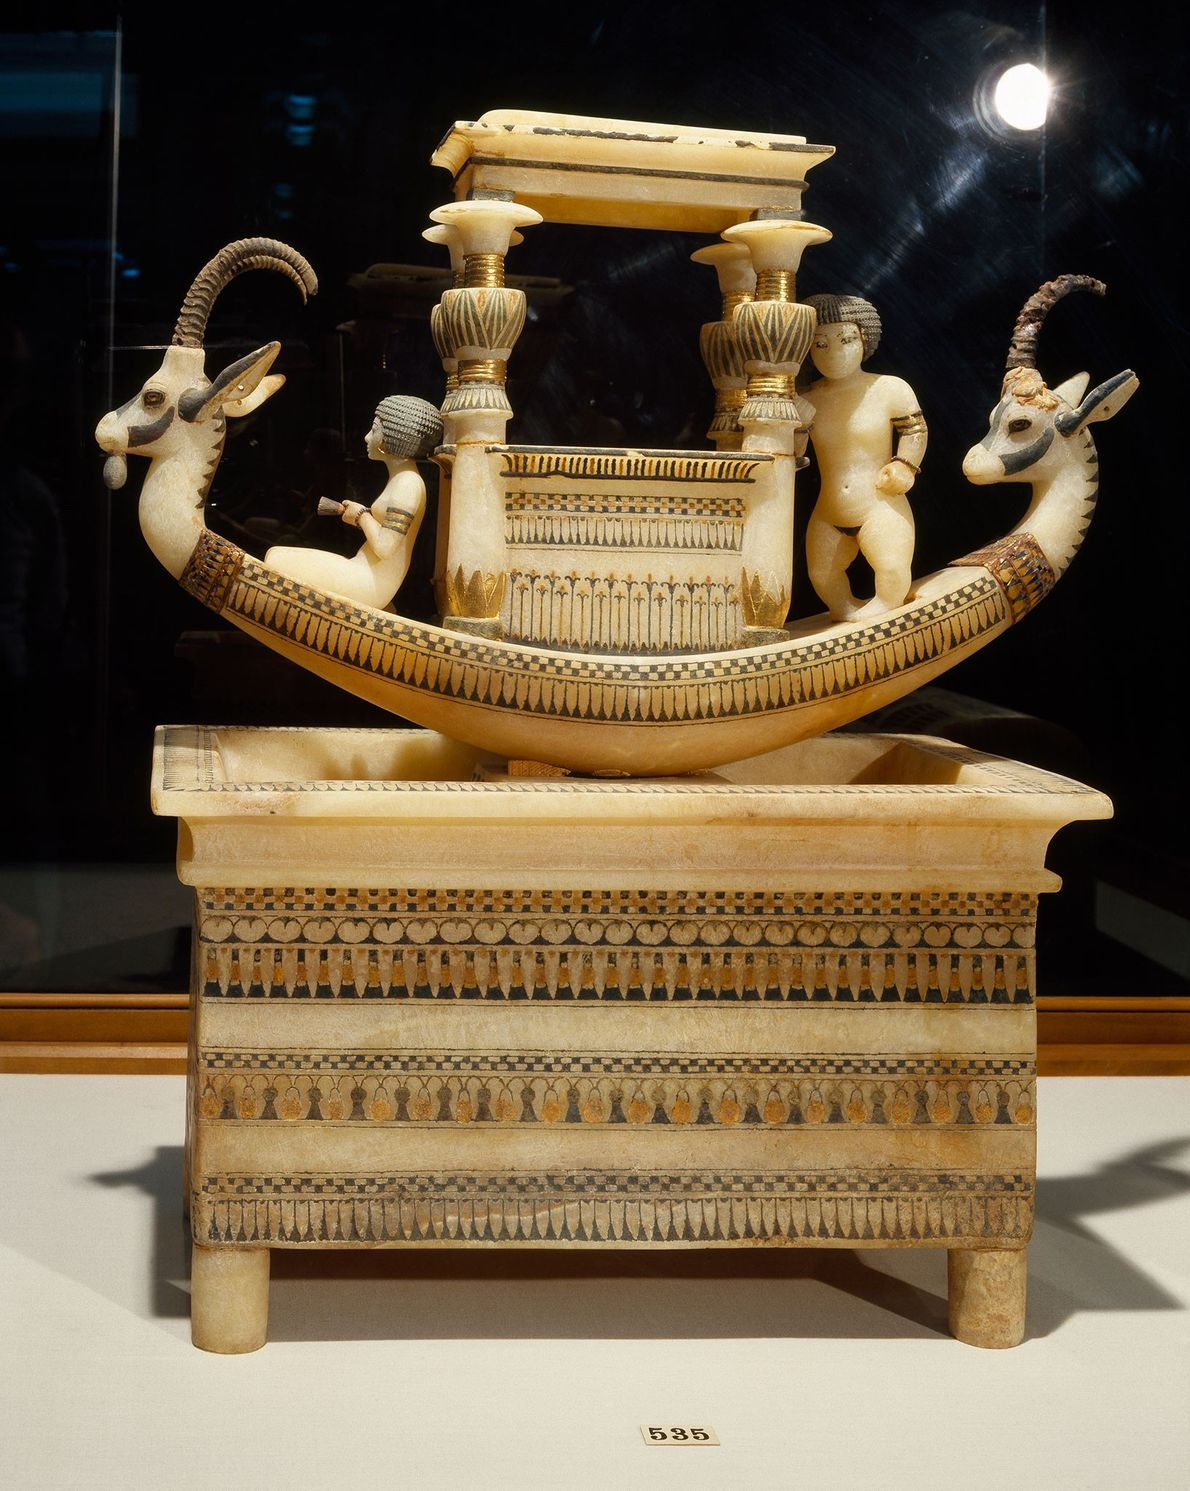 This decorative boat was buried with pharaoh Tutankhamen.